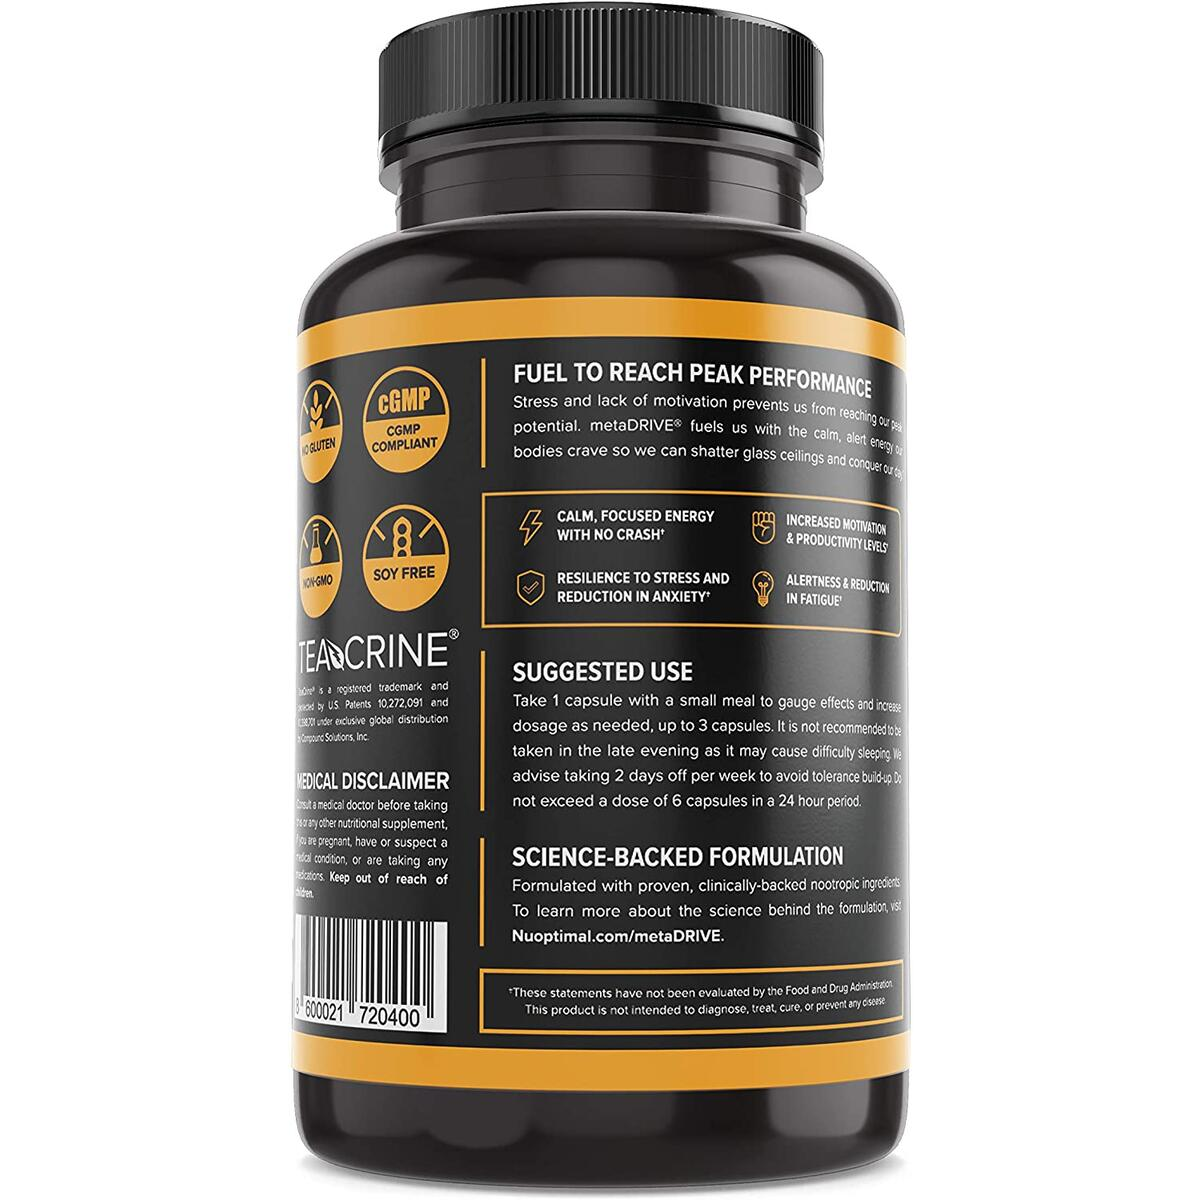 Premium Nootropic Brain Booster Supplement for Energy, Focus, & Motivation - 8 Cognitive Enhancing Ingredients Including Theobromine, L Tyrosine, TeaCrine®, & Rhodiola Rosea…